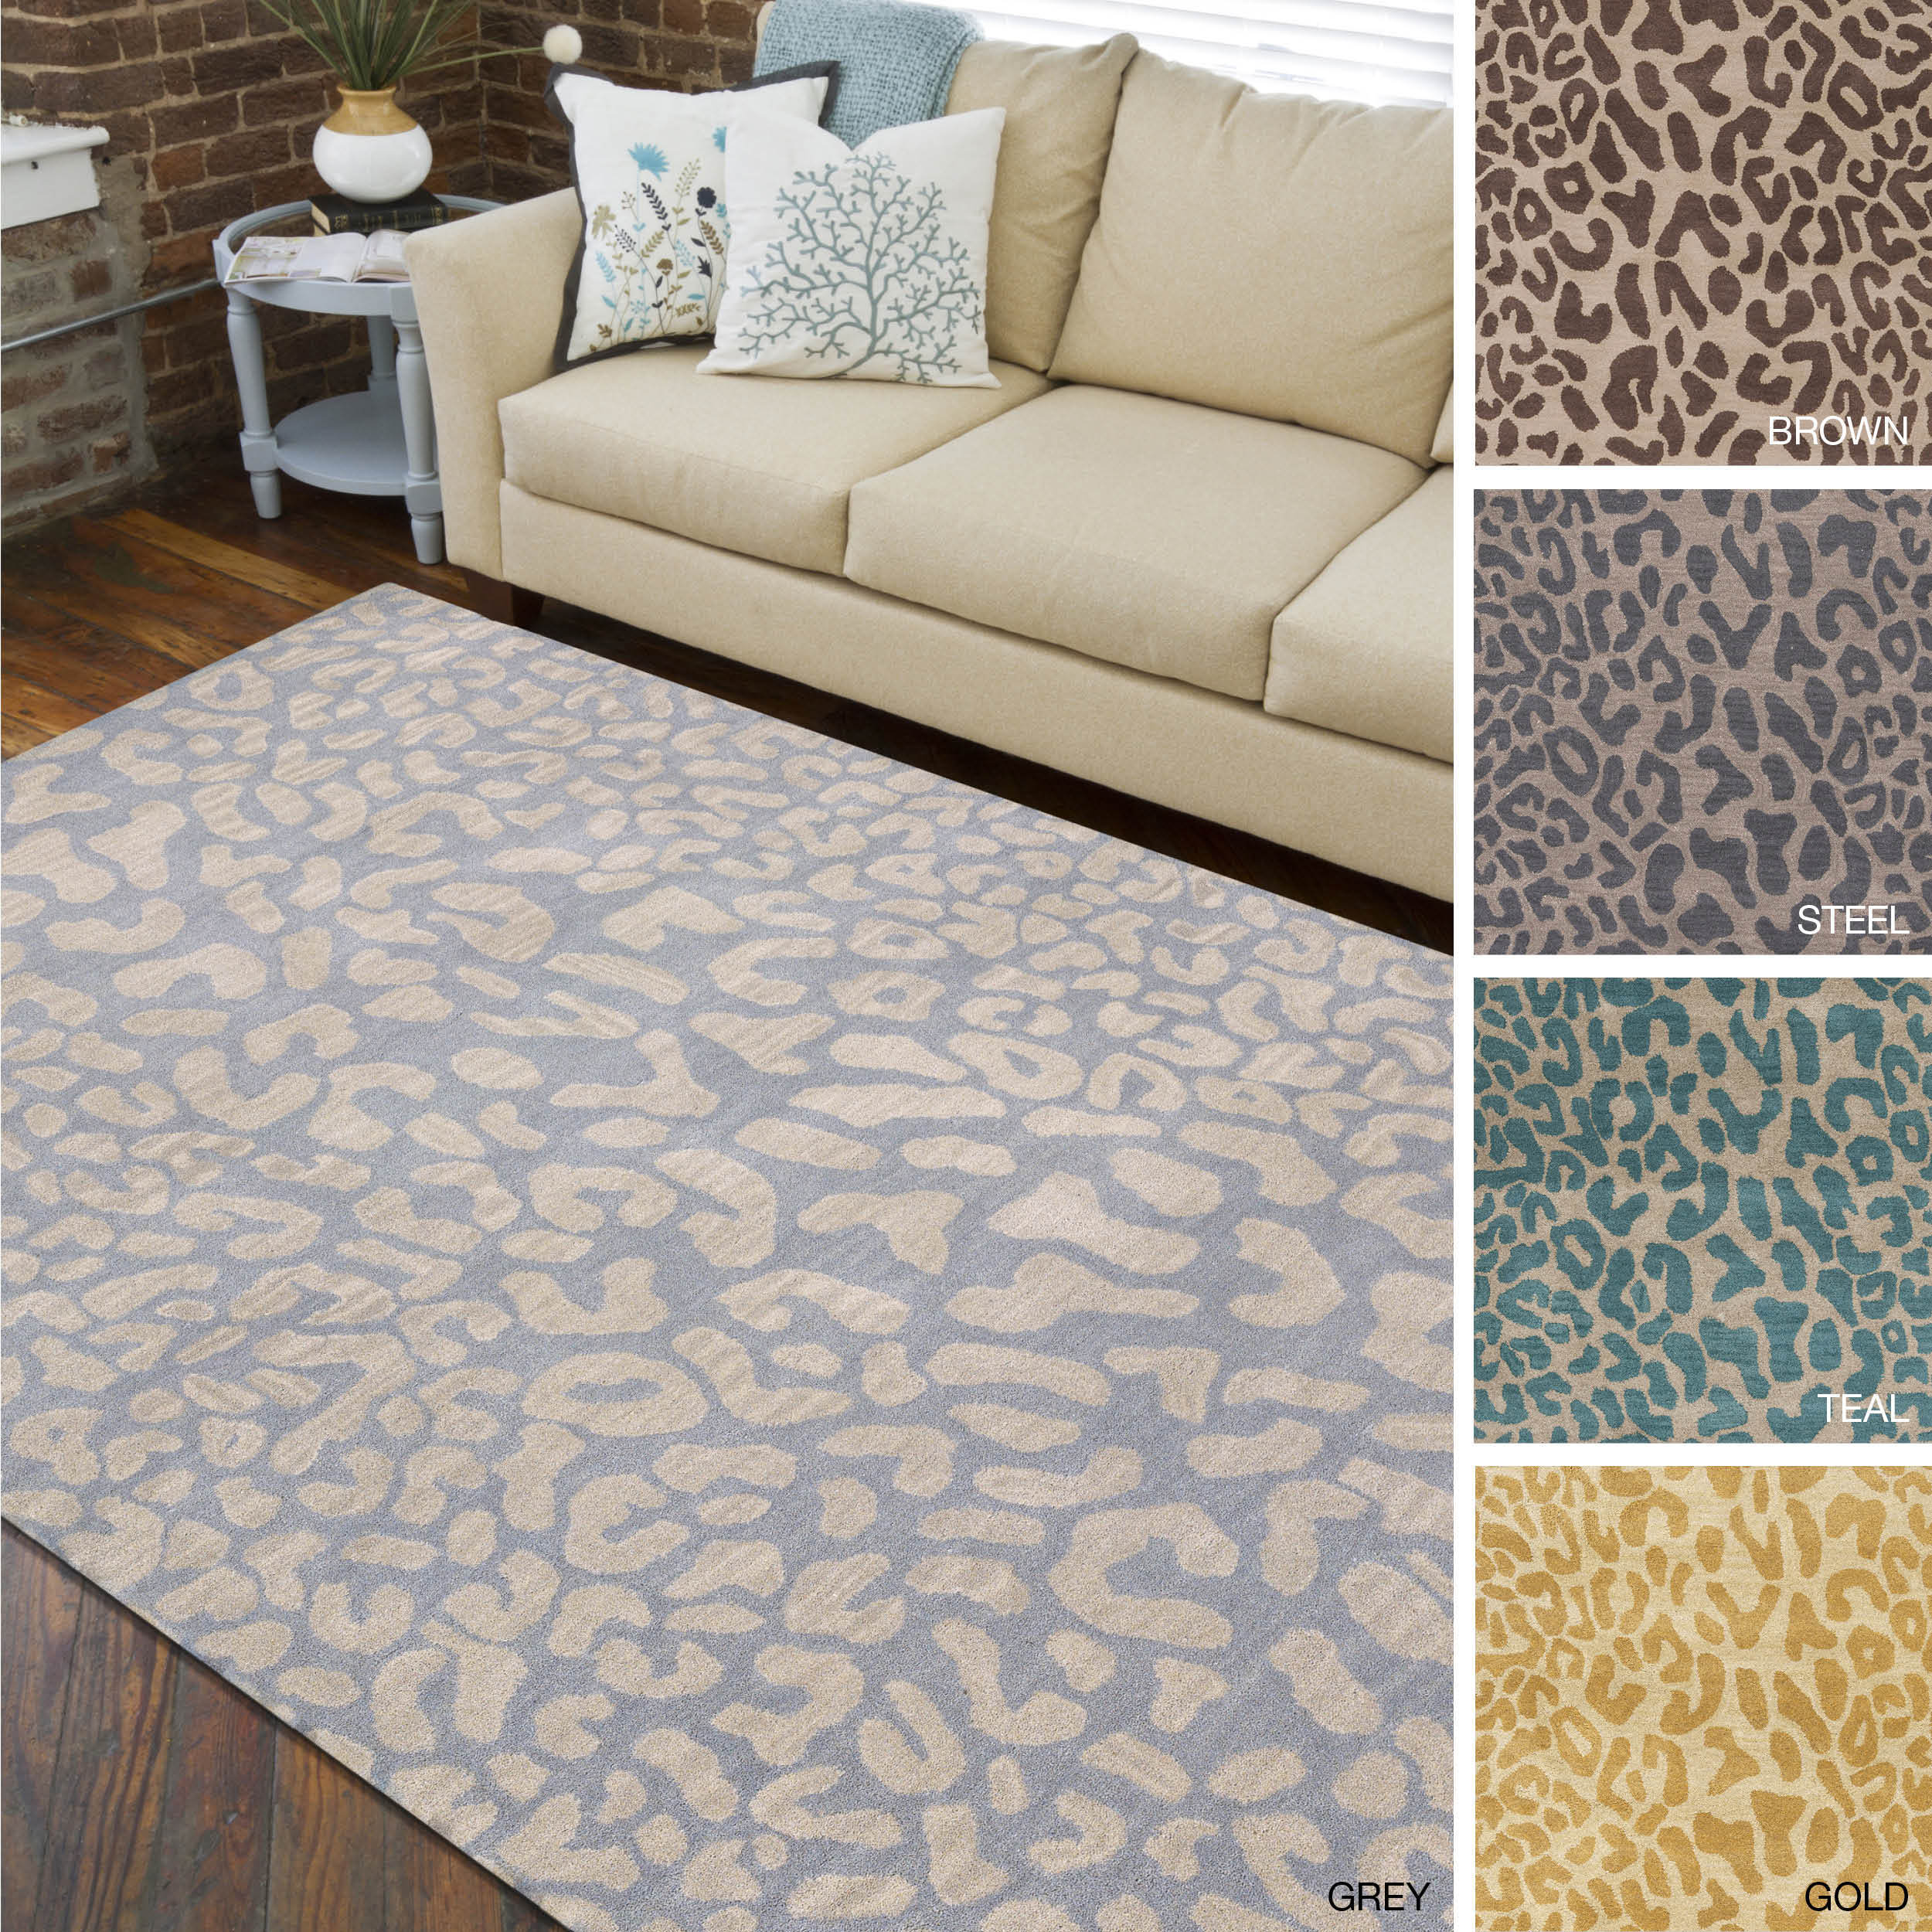 Shop Hand-tufted Jungle Animal Print Wool Area Rug